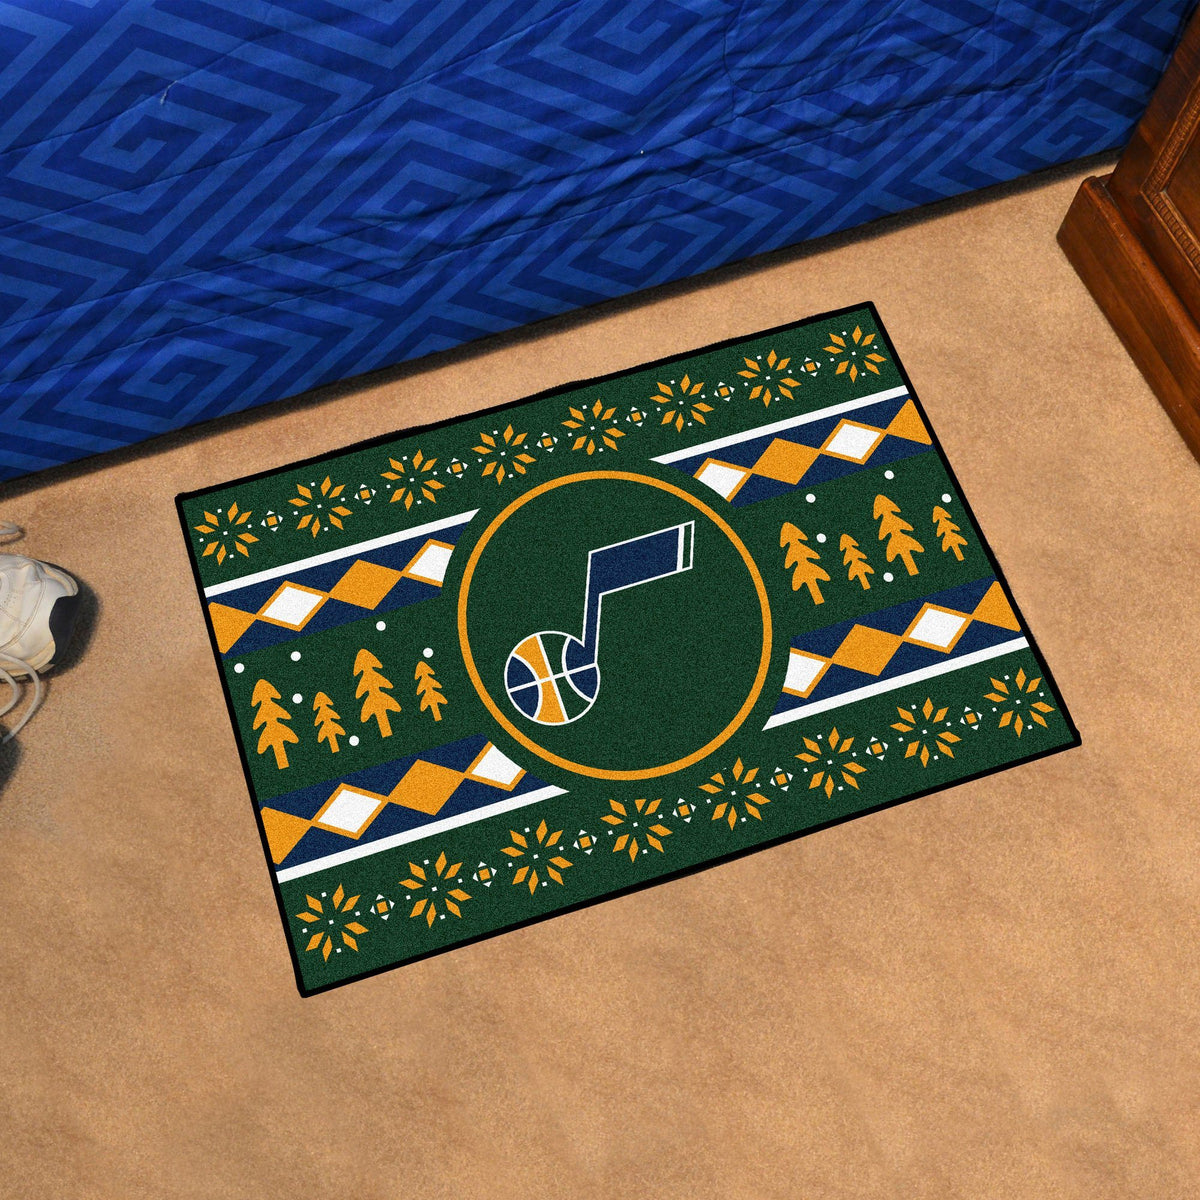 NBA - Holiday Sweater Starter Mat NBA Mats, Rectangular Mats, Holiday Sweater Starter Mat, NBA, Home Fan Mats Utah Jazz